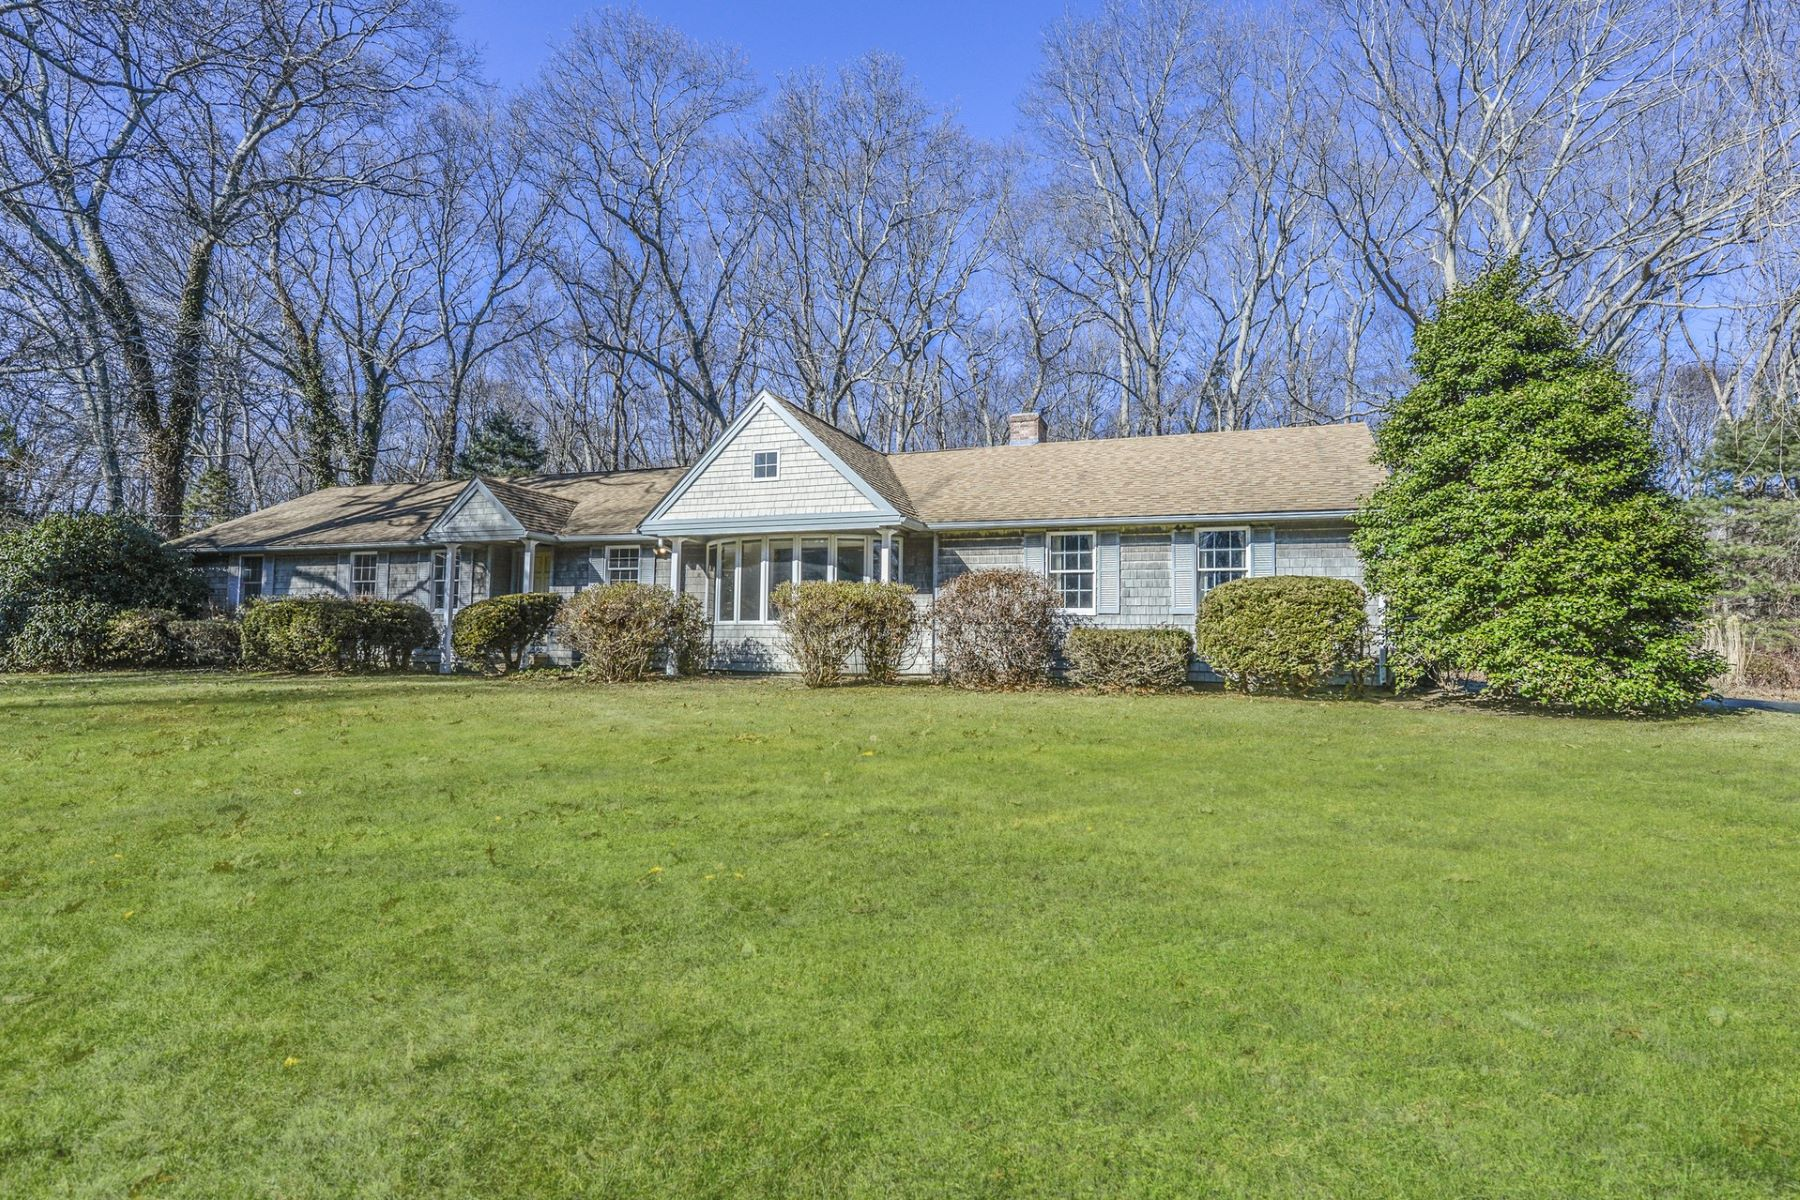 Single Family Homes for Sale at 304 Beacon Drive, North Kingstown, RI North Kingstown, Rhode Island 02852 United States